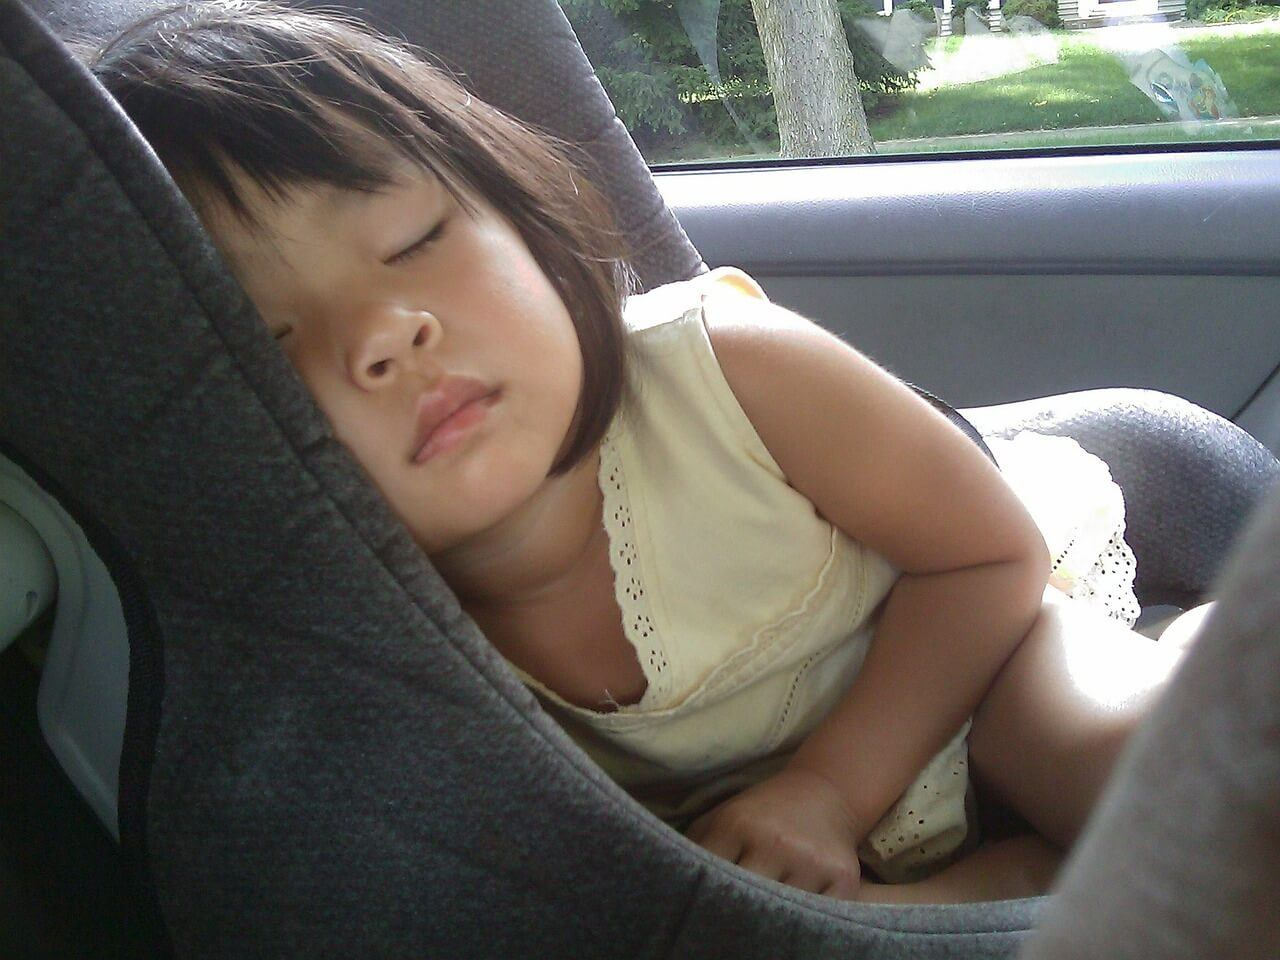 Replace a Child's Car Seat After Any Accident? Pt. 2